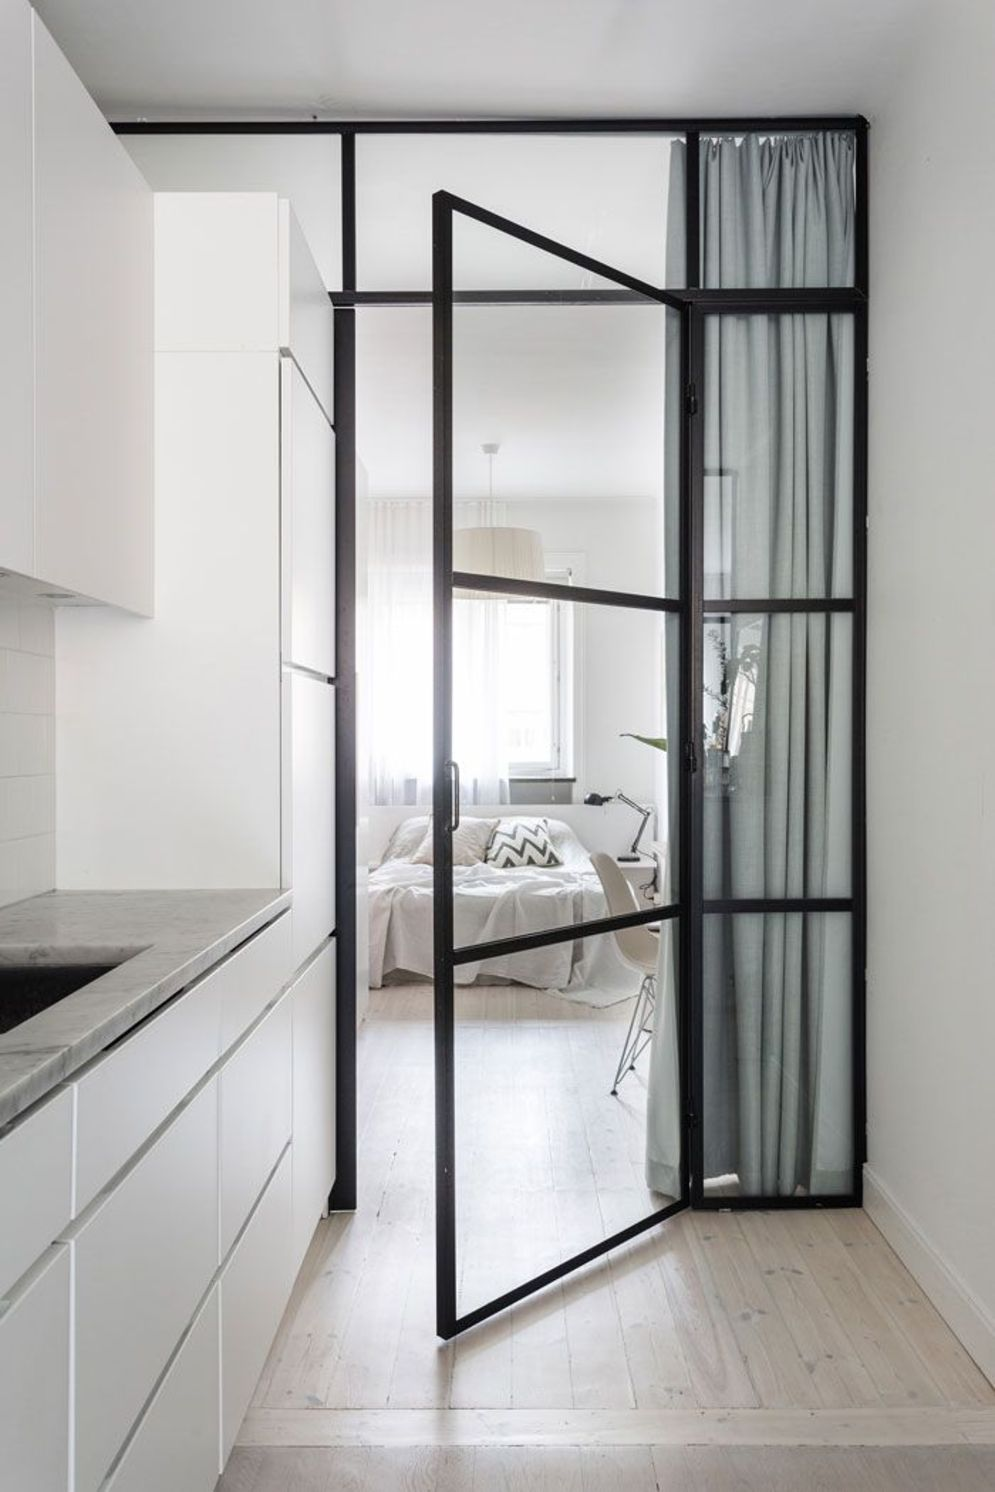 Limitless interior schemes with clever glass partition enlarging wide interior vibes Image 34